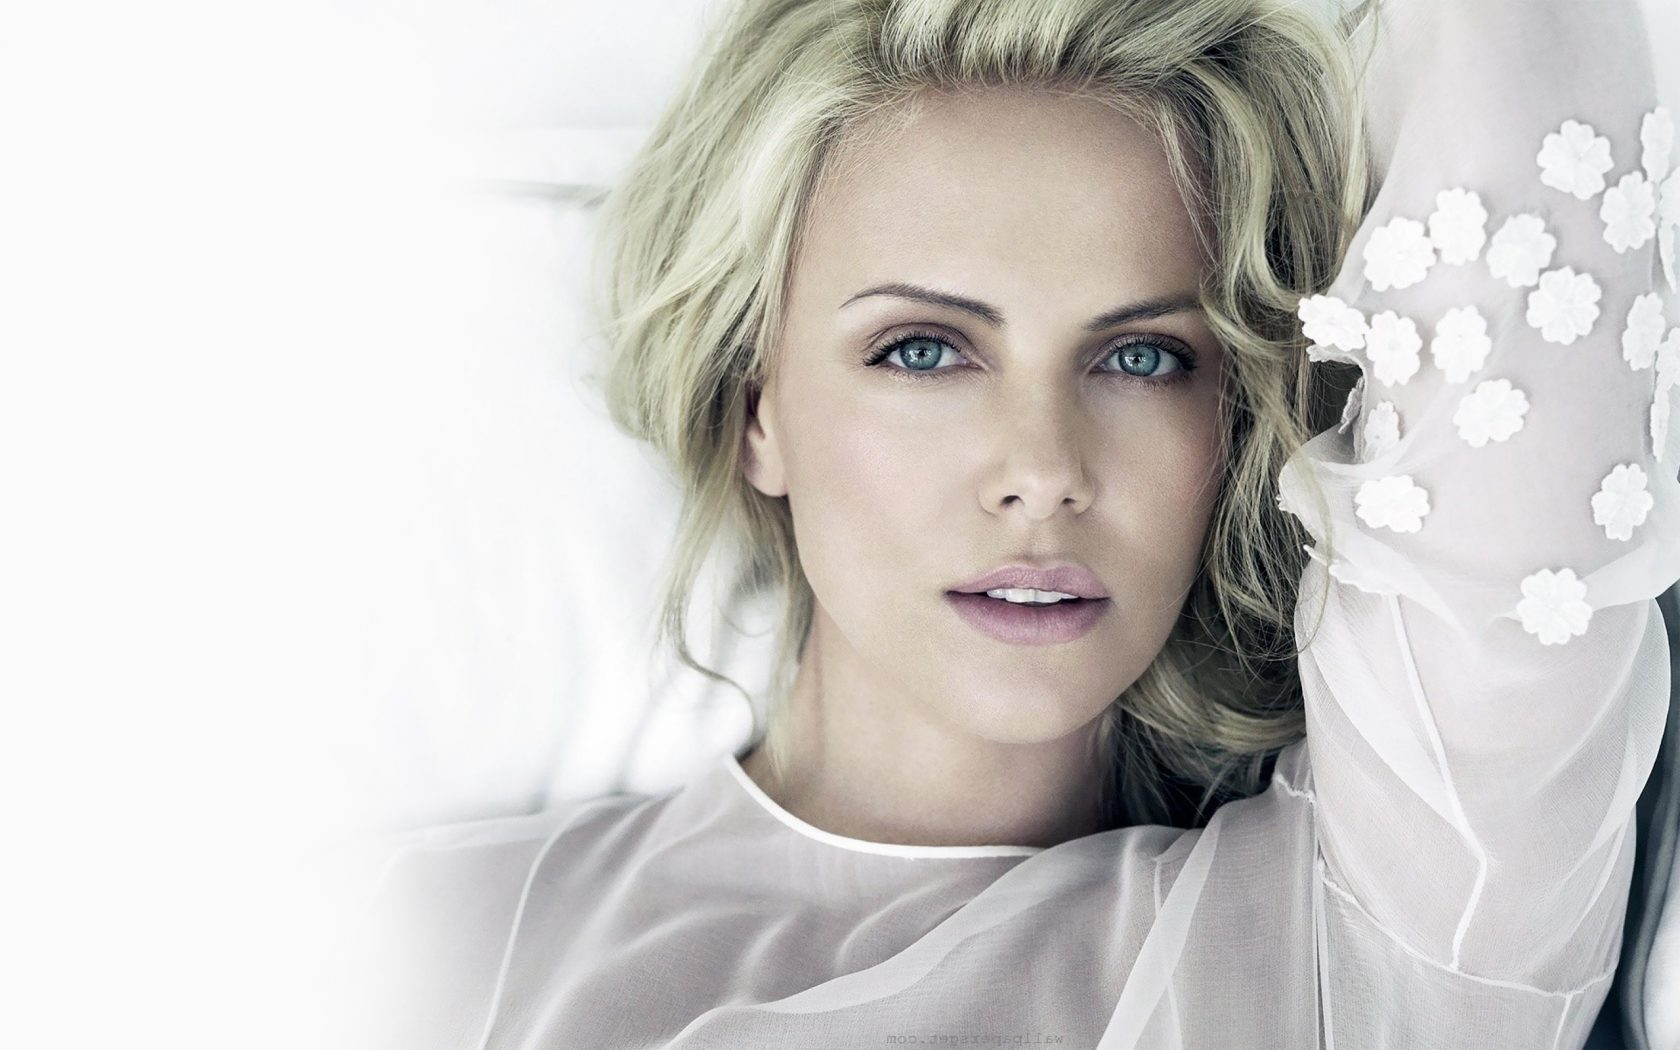 Mobile WVGA 240x400 480x800 400x240 Smartphone 169 540x960 720x1280 IPhone 5 S 640x1136 6 750x1334 Charlize Theron Hot Wallpaper